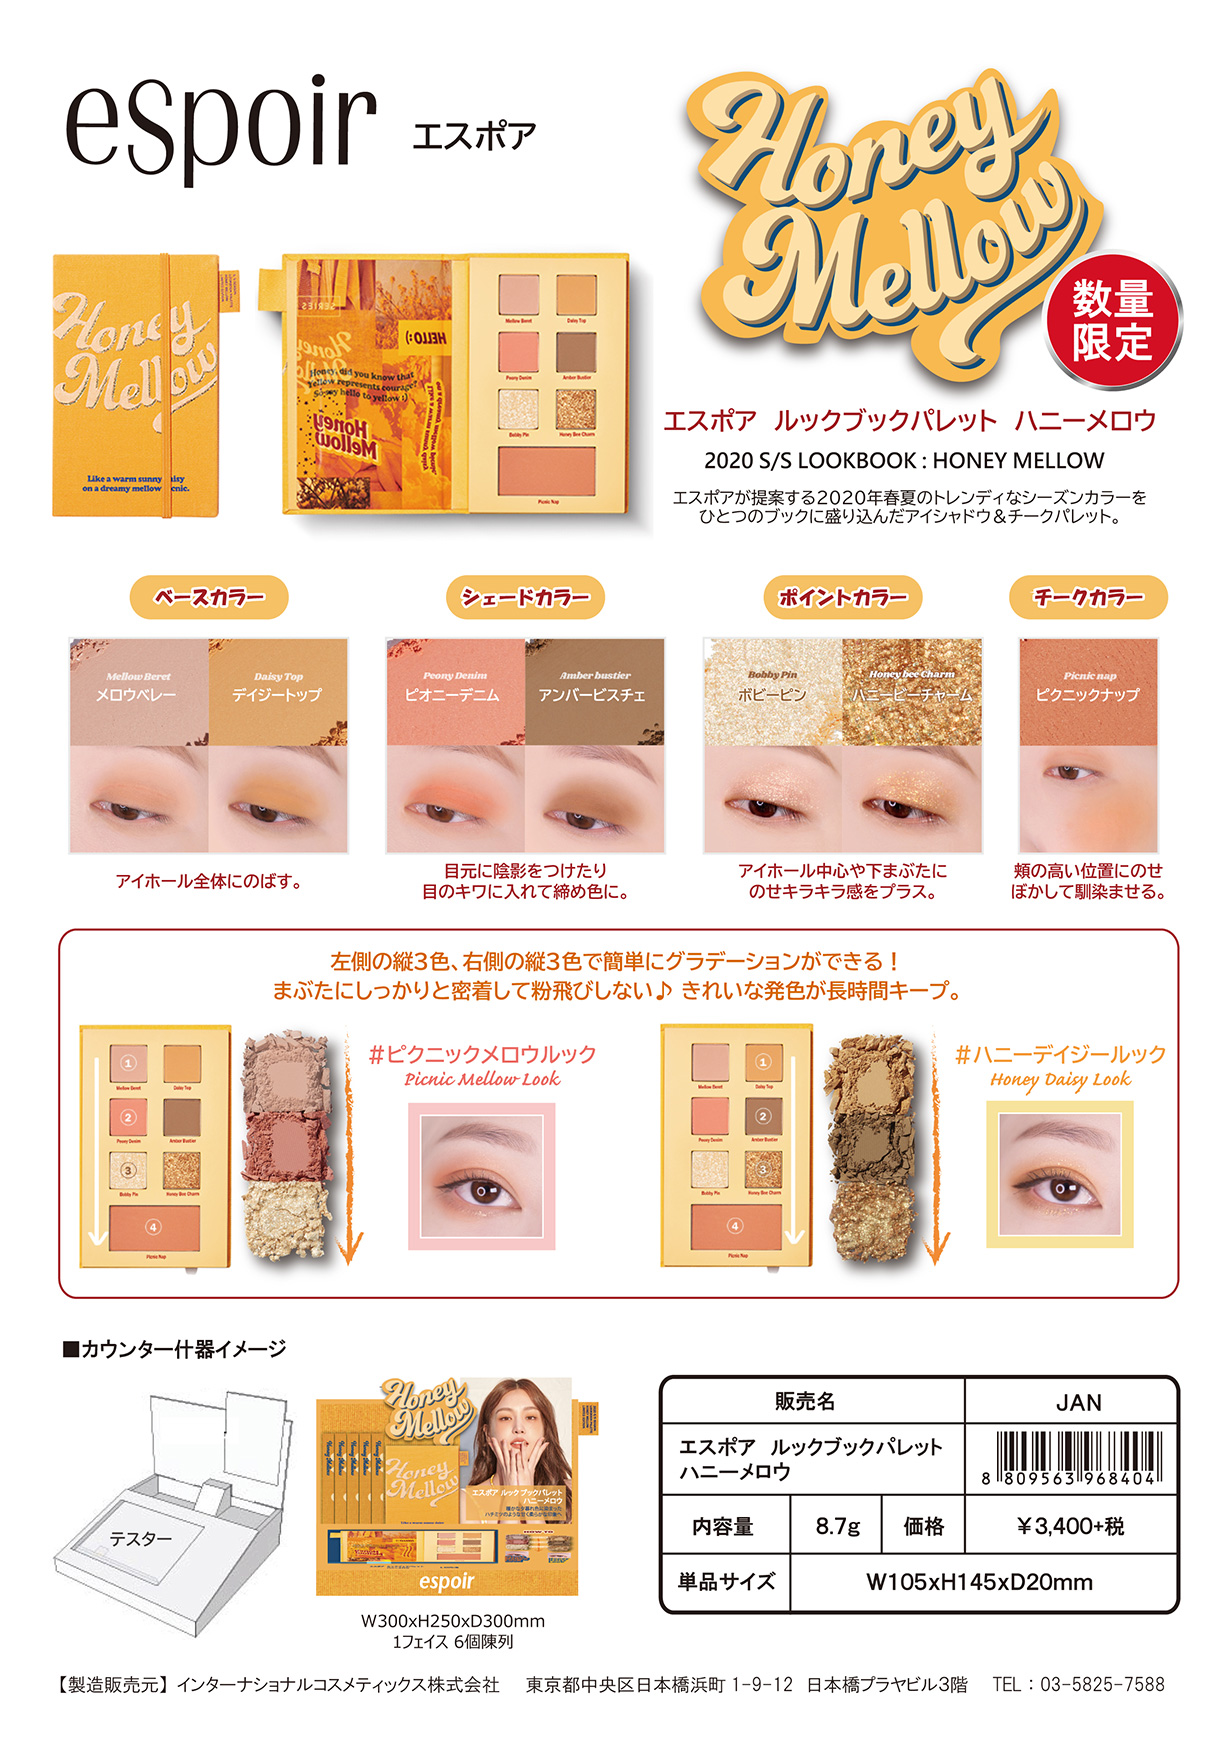 [Catalog] espoir LookBook Honey Mellow